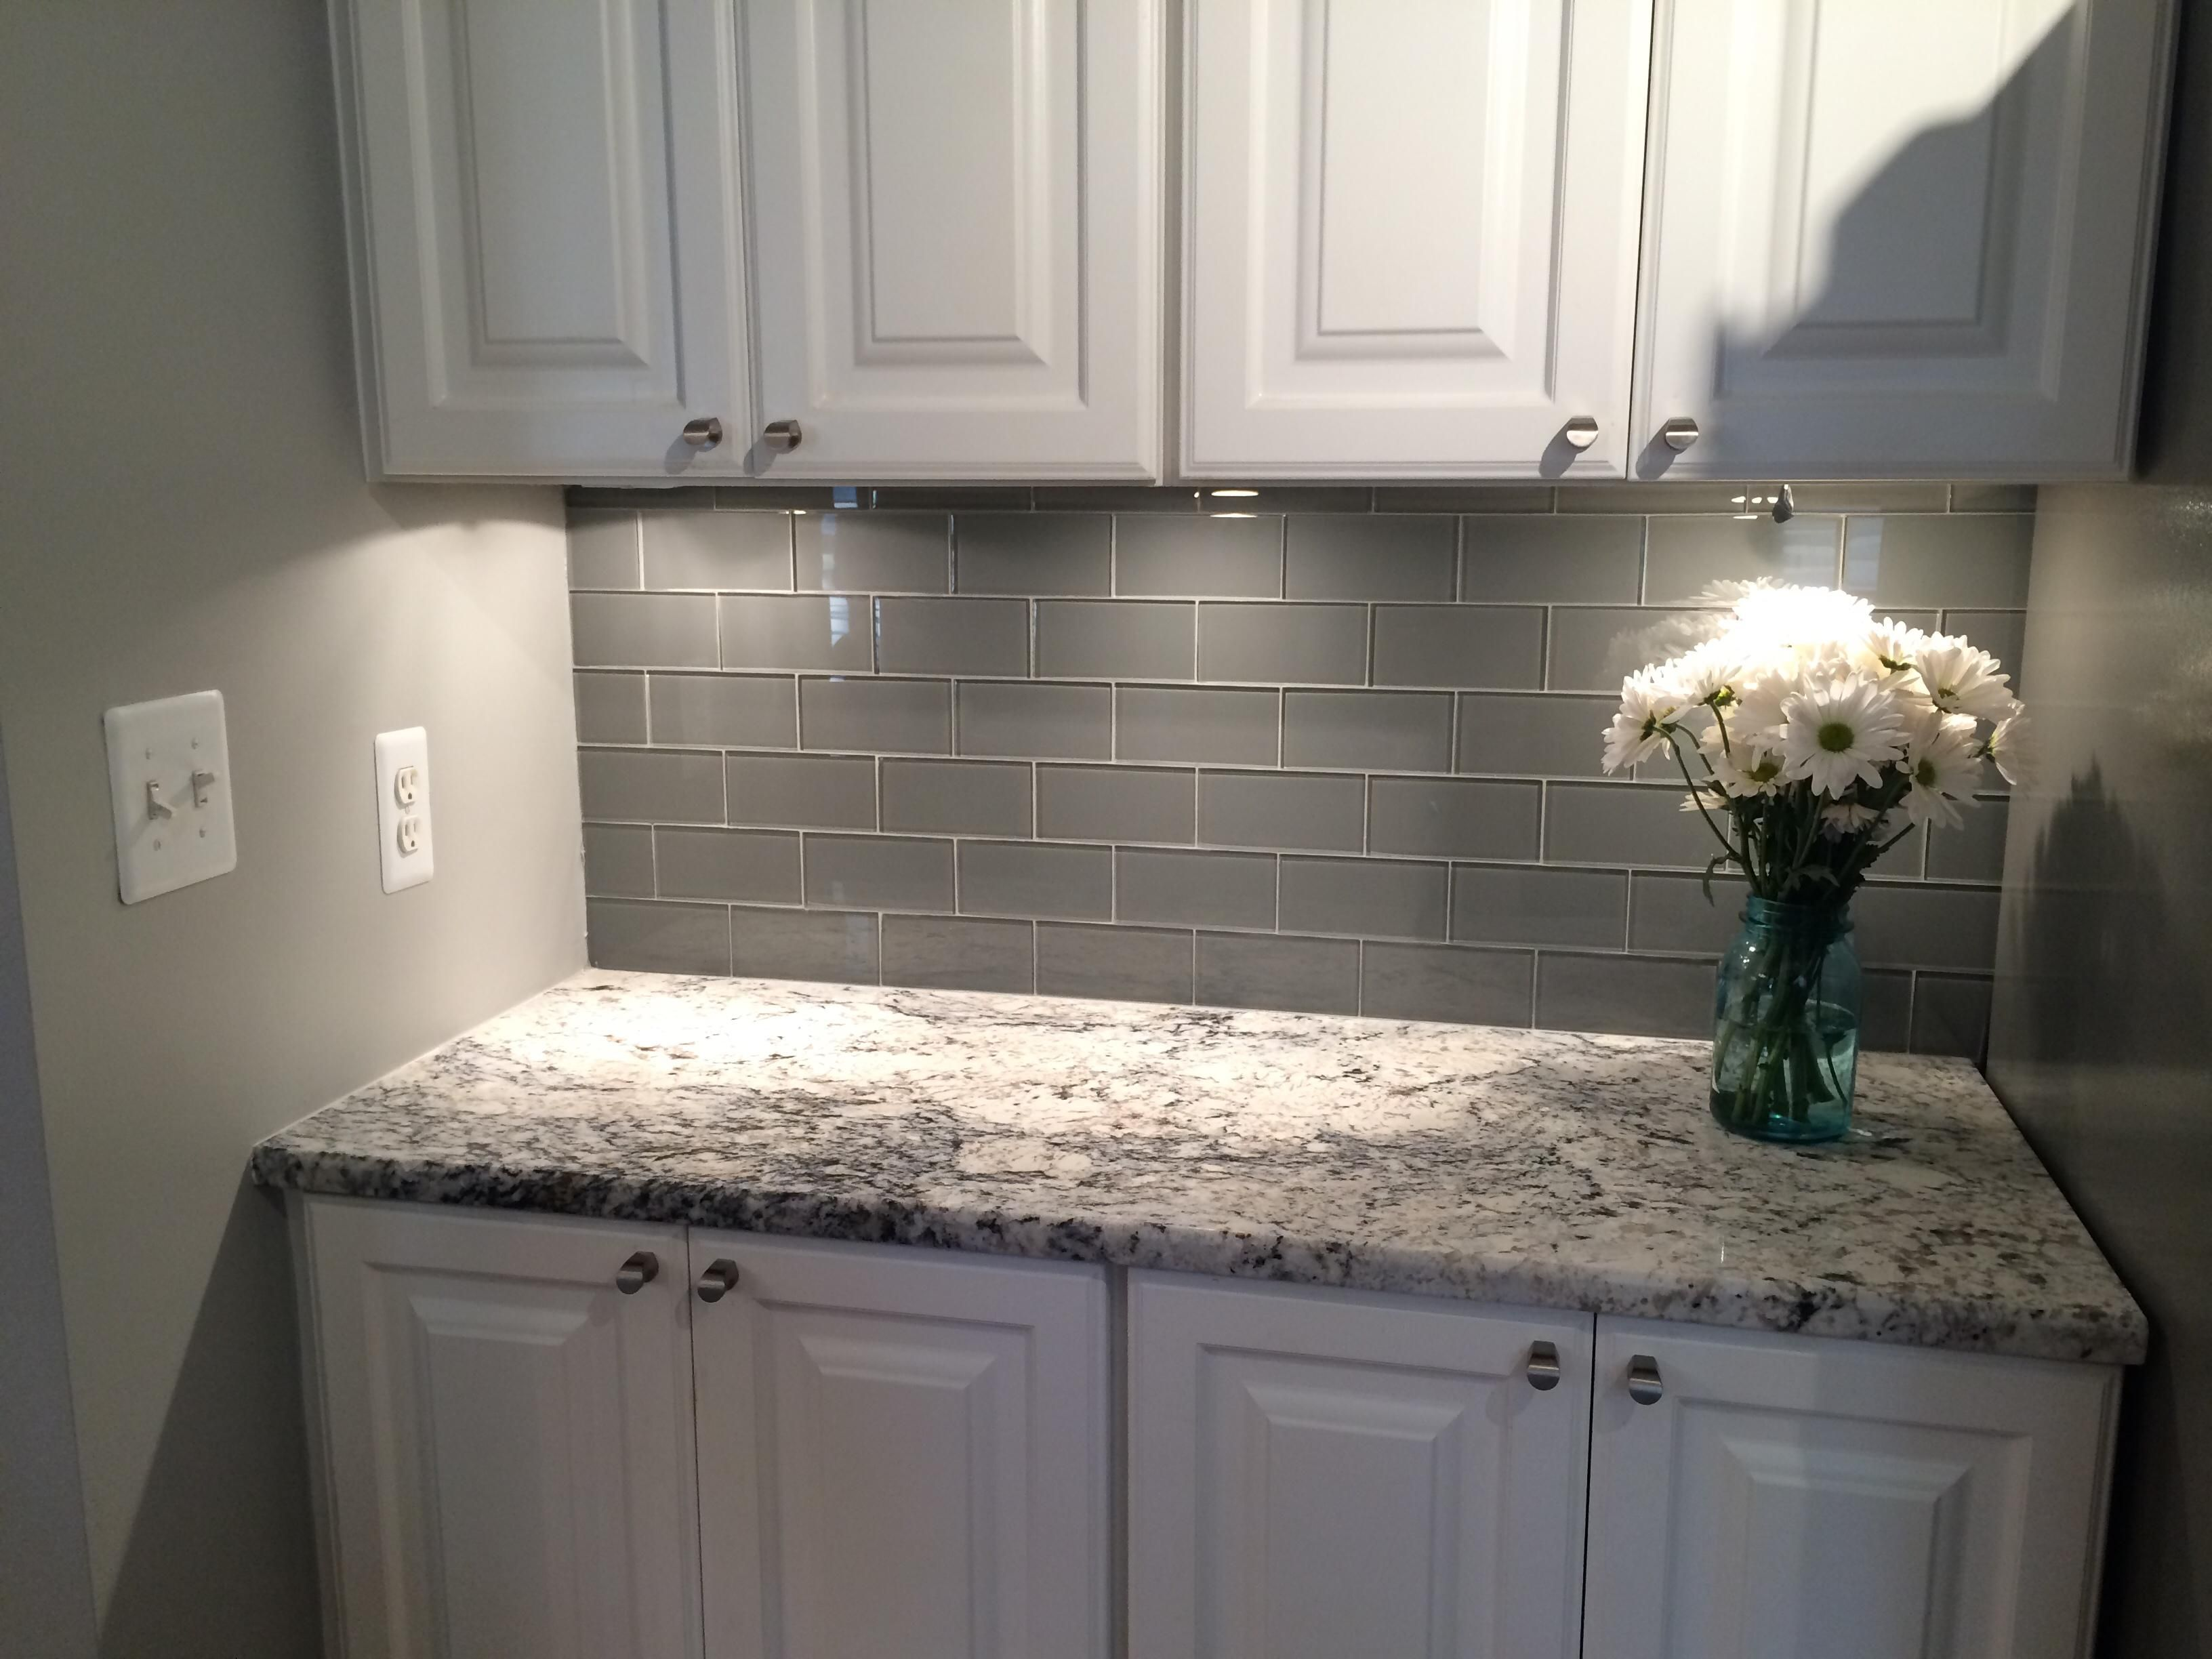 White Tile Backsplash Kitchen #3   White Subway Tile Backsplash With Grey  Grout